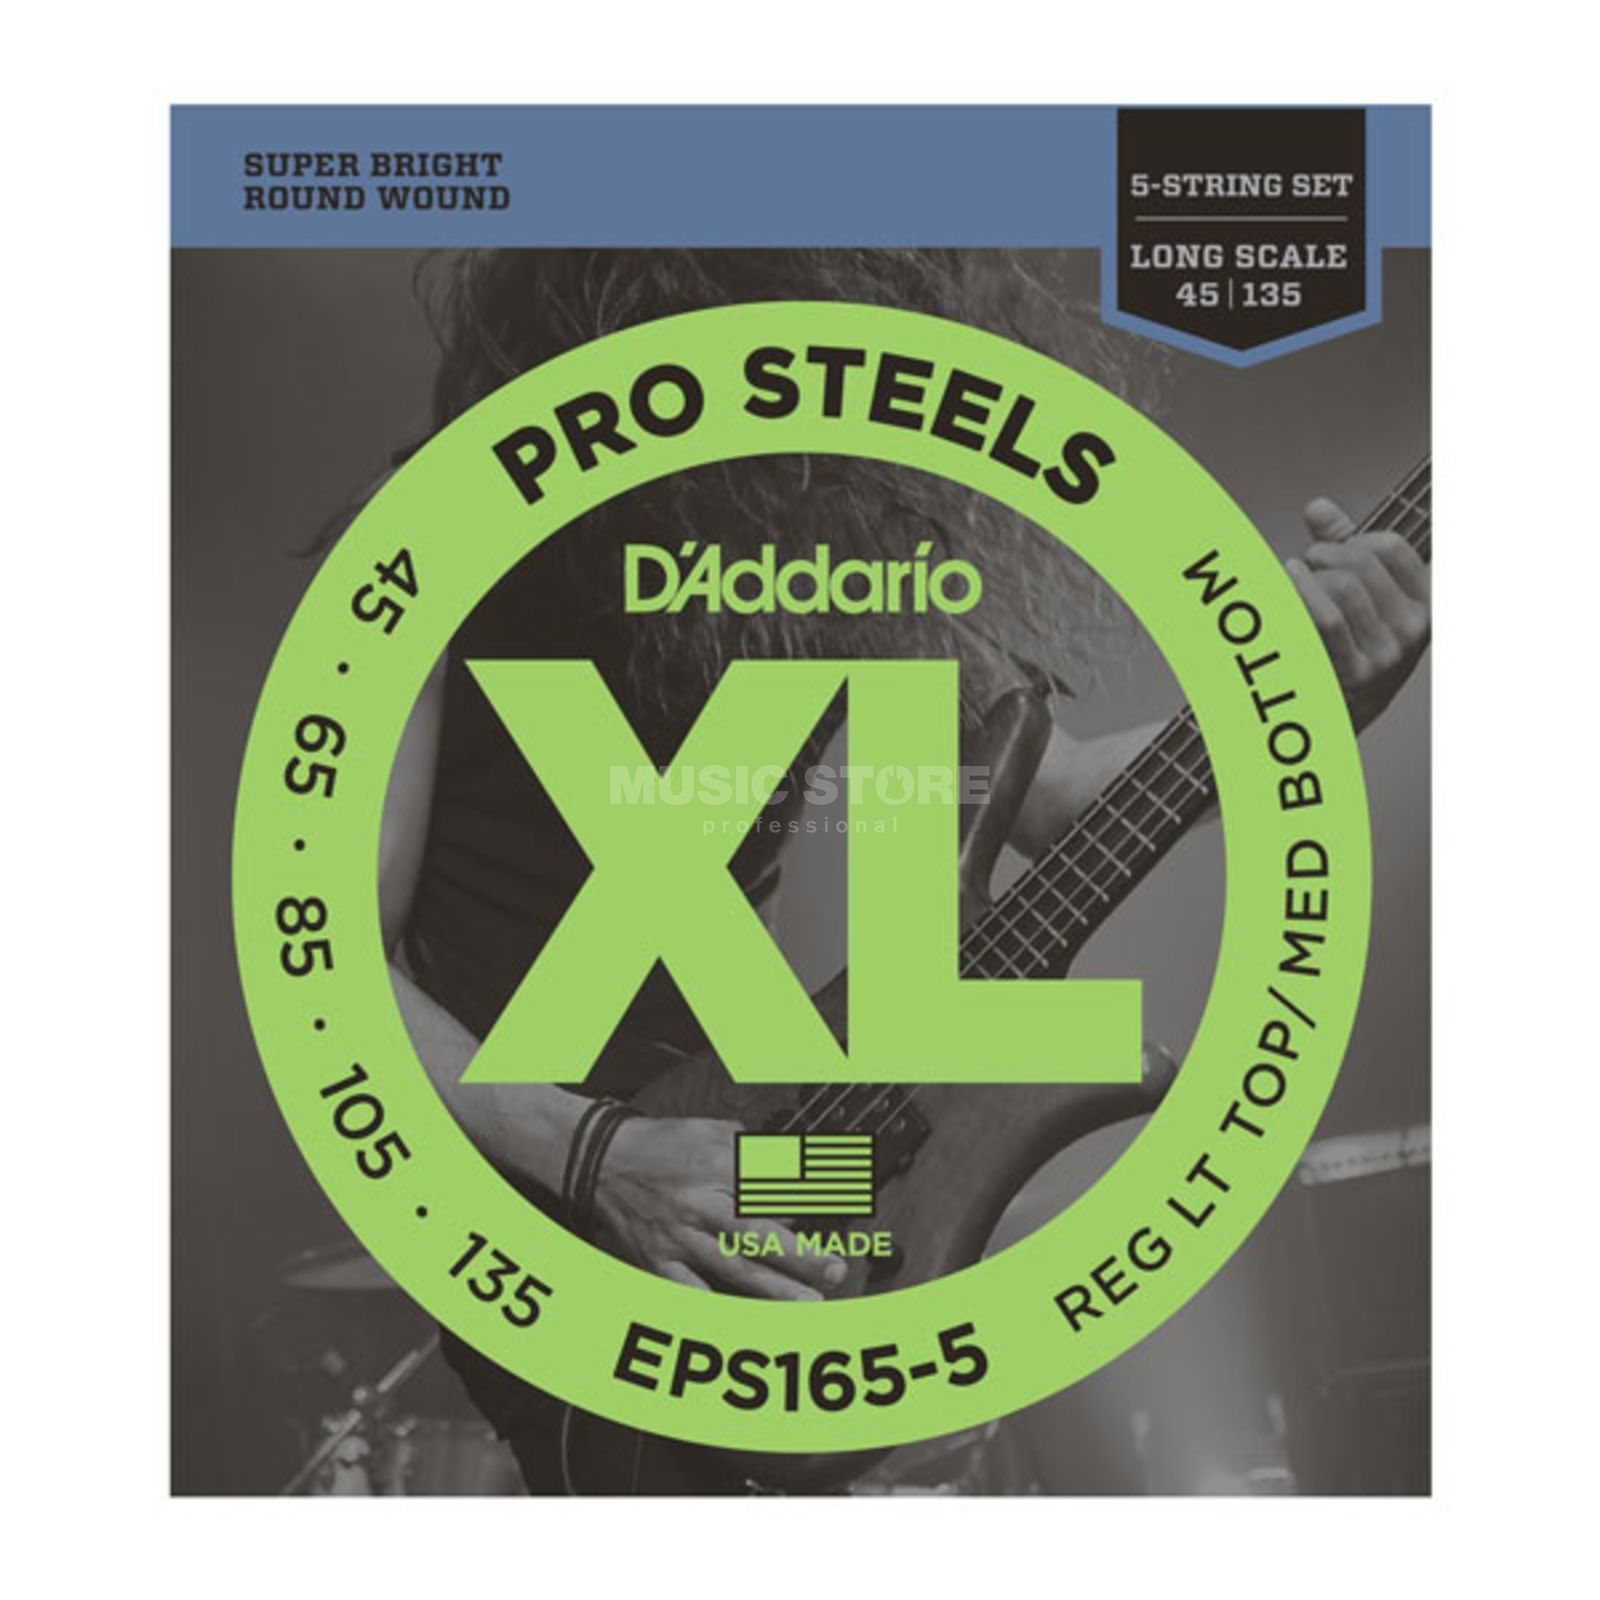 D'Addario 5er bas XL Pro Steels 45-135 45-65-85-105-135, EPS165-5 Productafbeelding